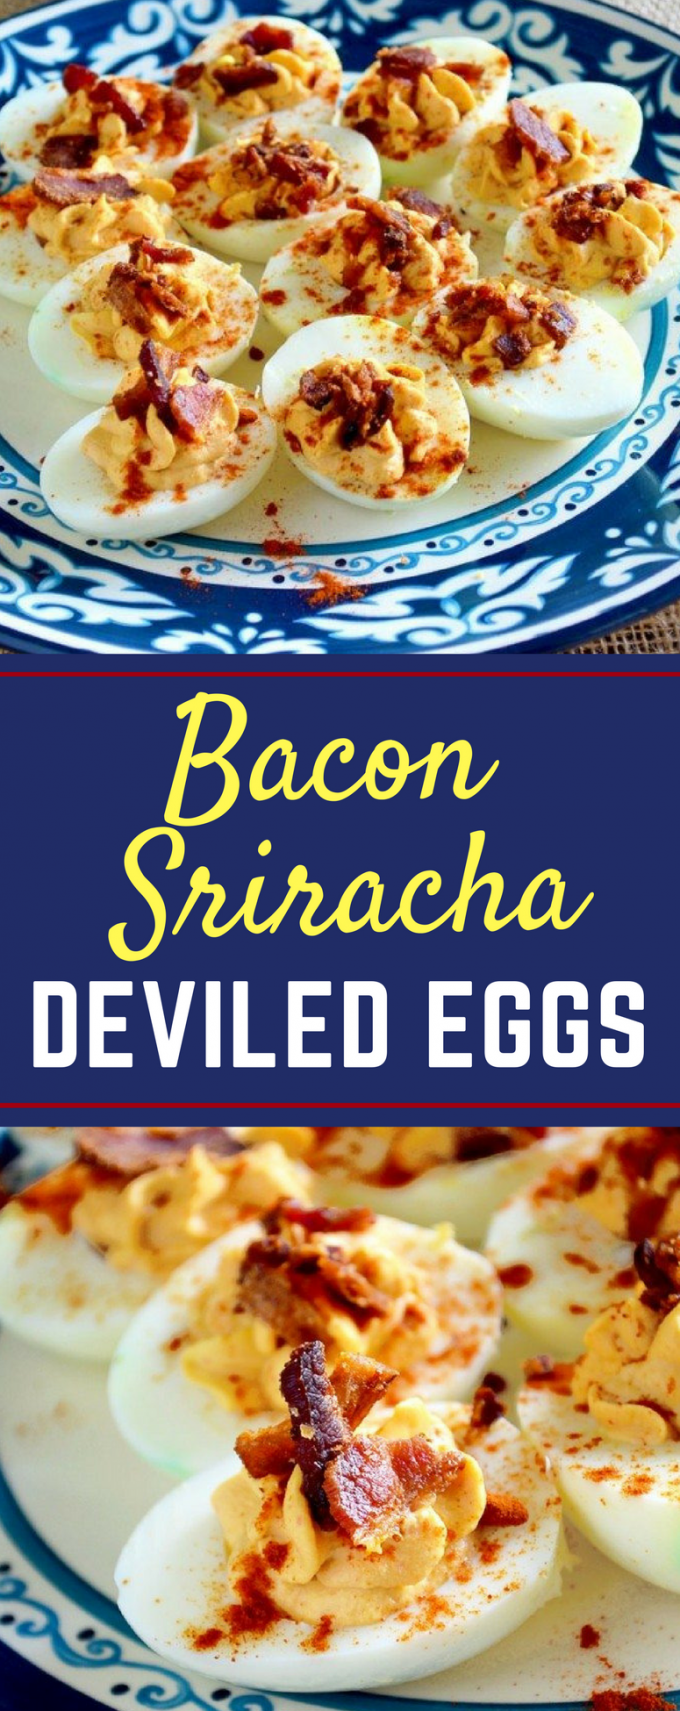 This is the BEST easy Bacon Sriracha Deviled Eggs recipe! The sriracha adds a spicy kick to a classic recipe that even rivals the Pioneer Woman! To add more heat, you could even top with jalapenos! #baconsrirachadeviledeggs #classicdeviledeggs #easterrecipes #easydeviledeggs #gogogogourmet via @gogogogourmet